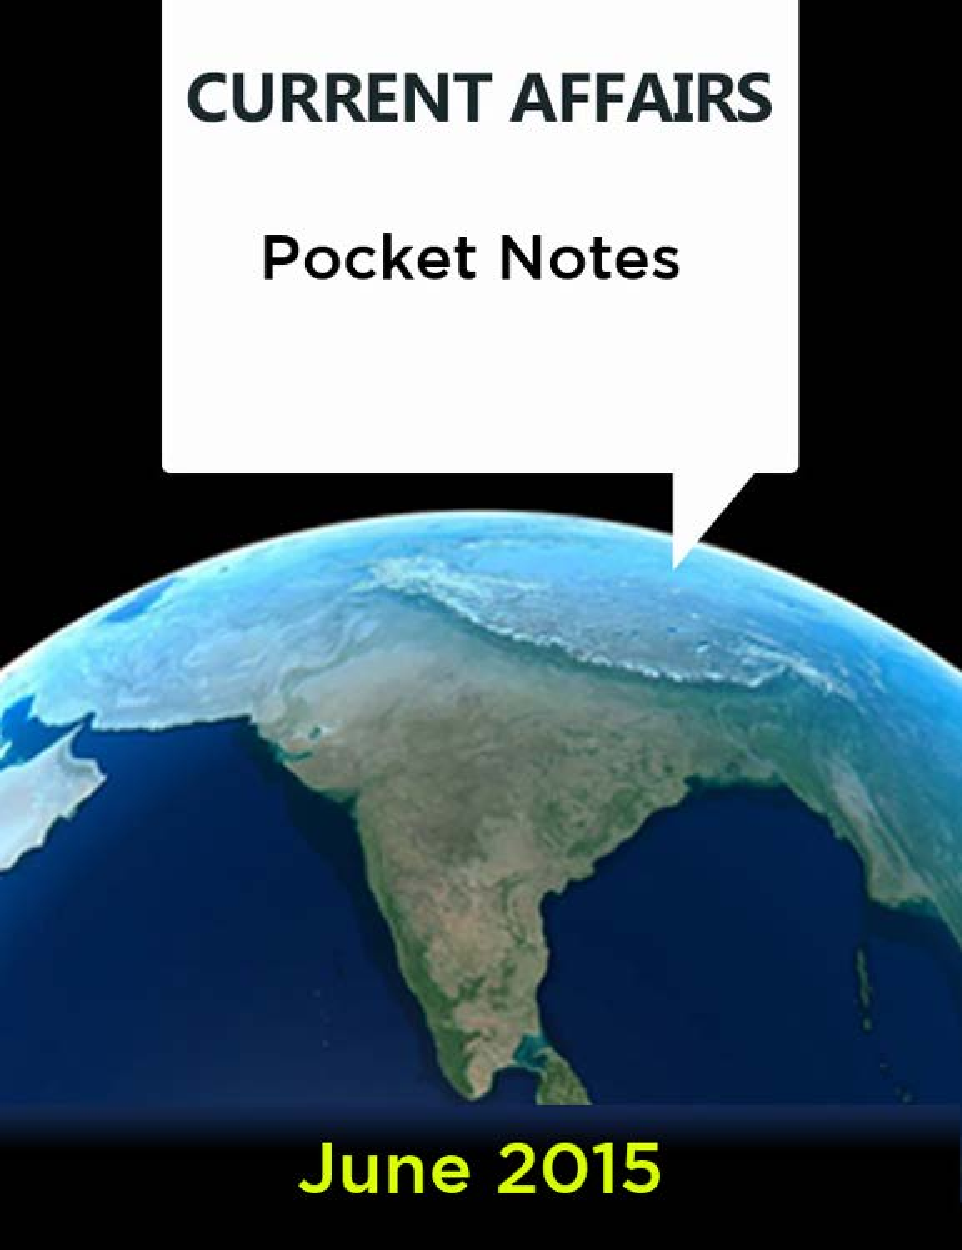 Current Affairs Pocket Notes - June 2015 - Page 1